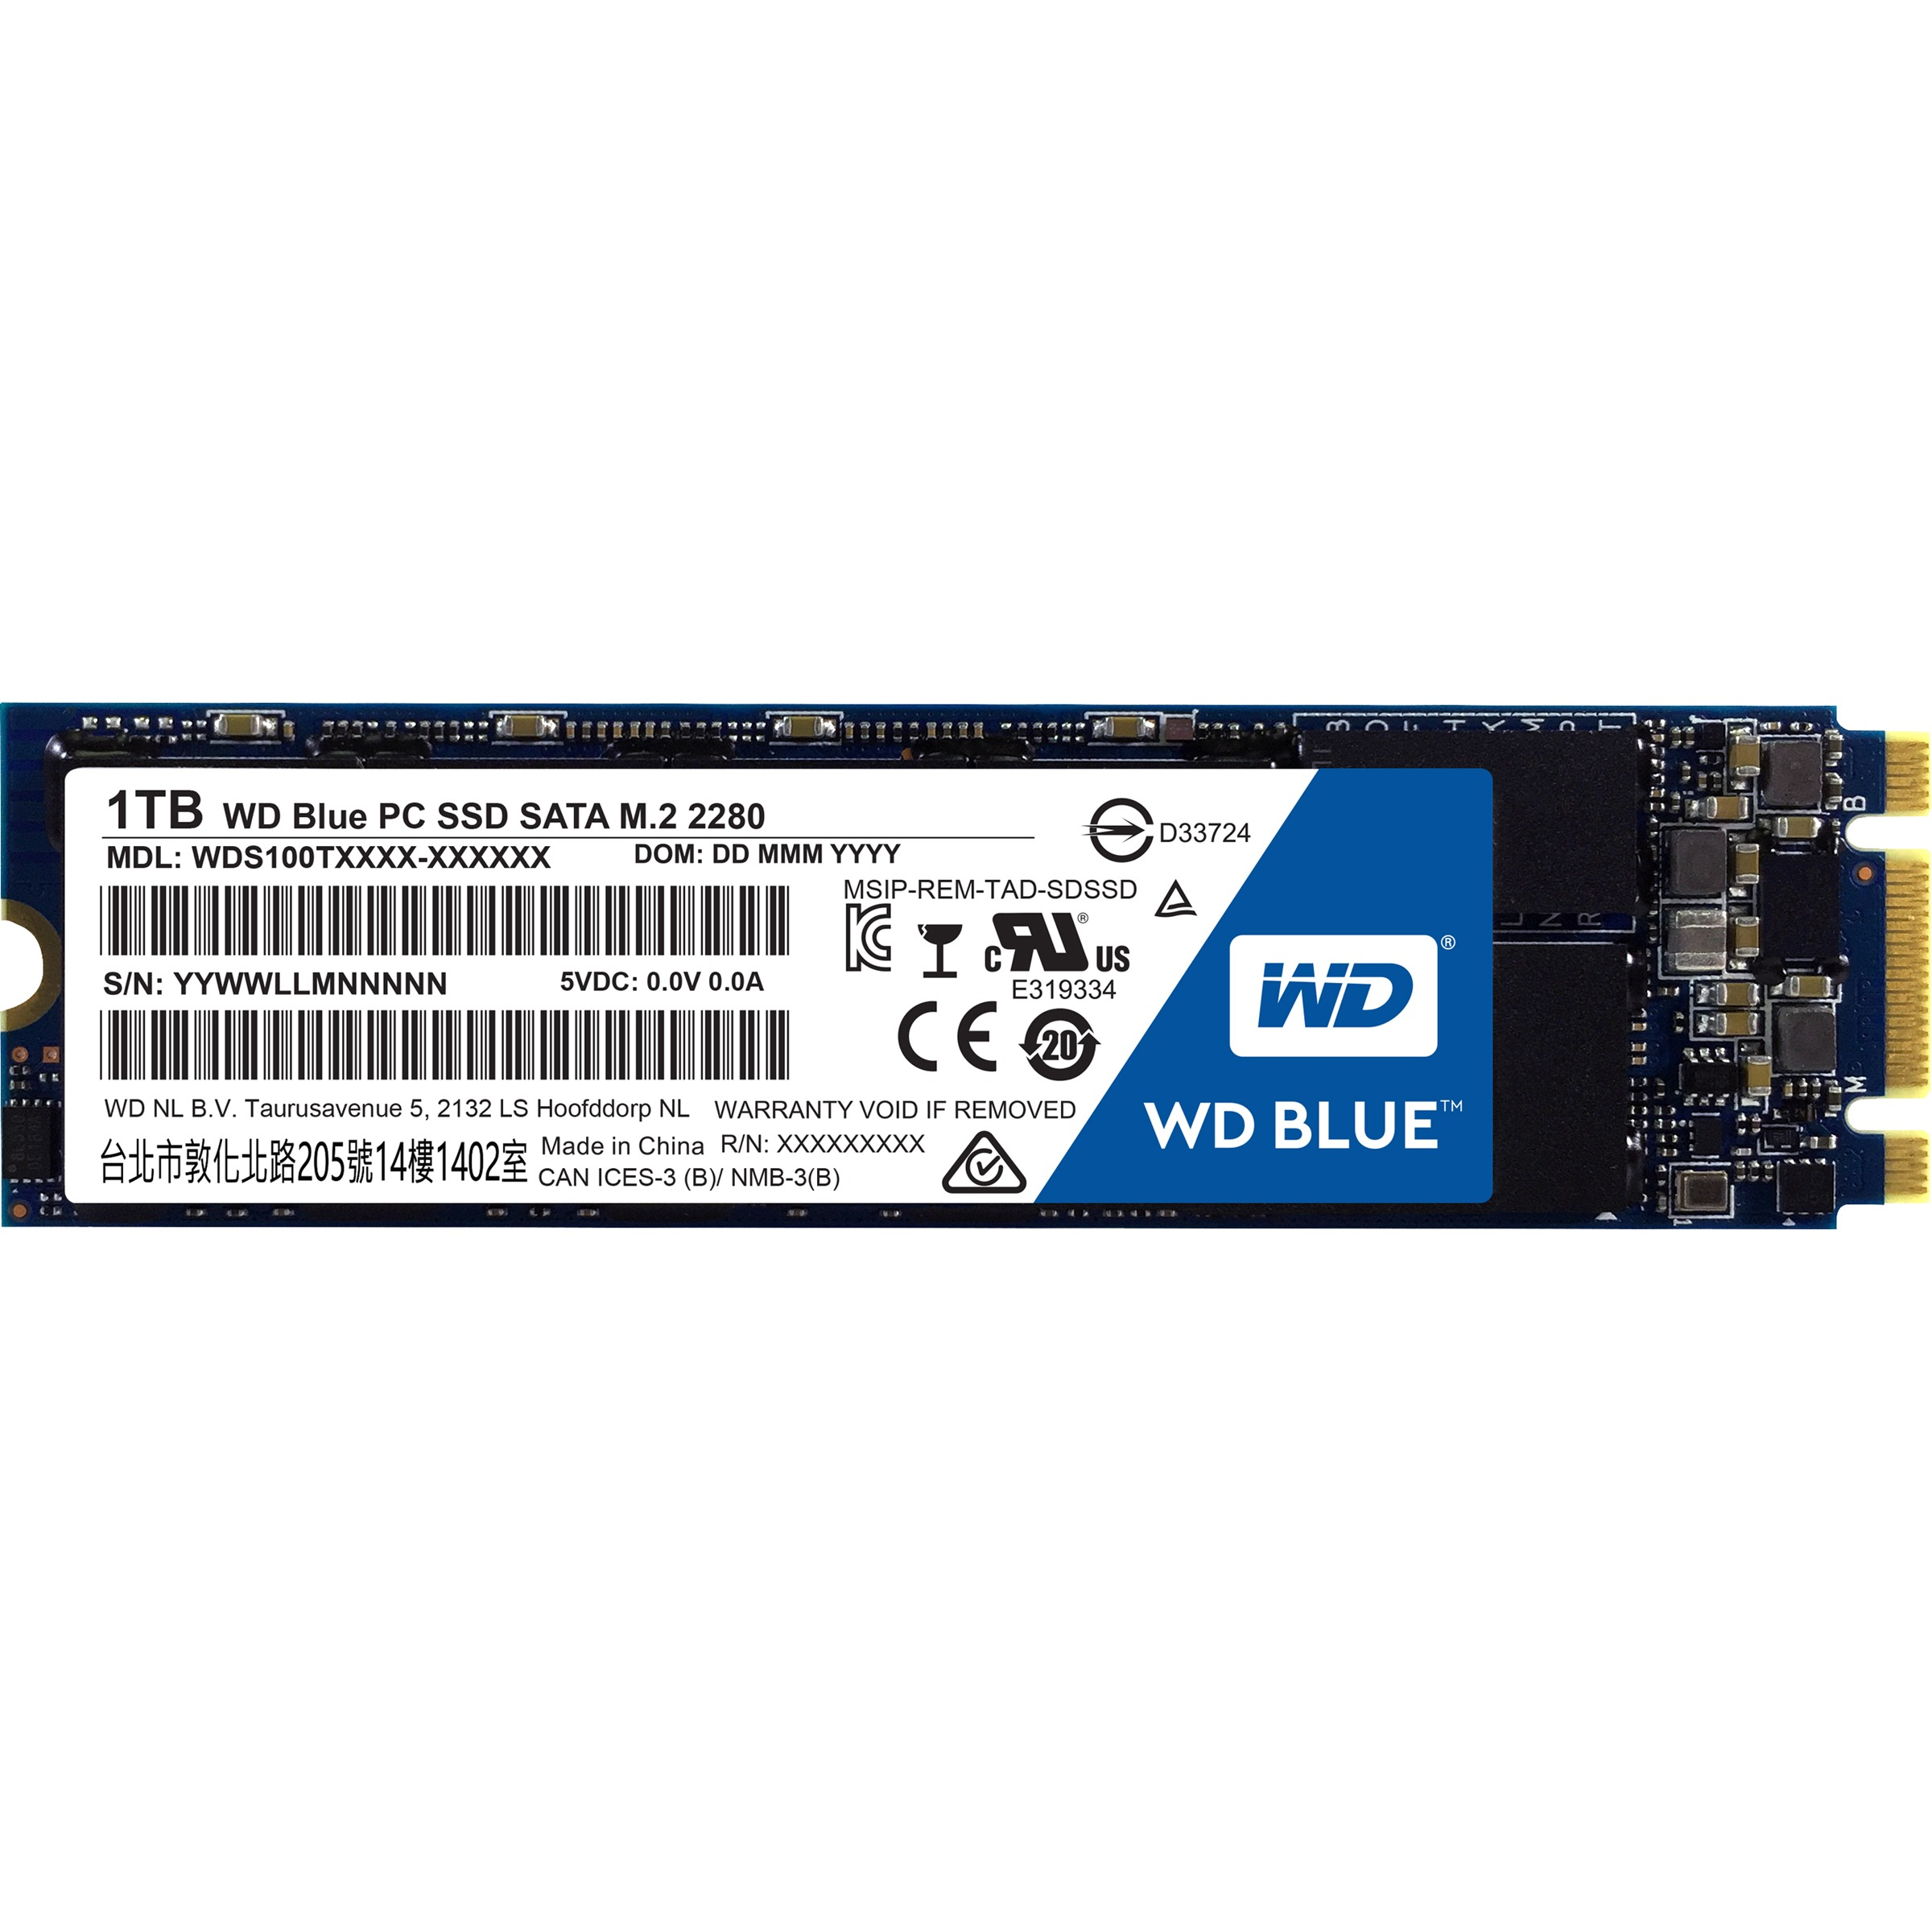 WD Blue SSD 1TB M.2 2280 1.0TB SATA III 6Gb/s 80mm Western Digital PC Internal SSD Solid State Drive 545MB/s Maximum Read Transfer Rate 525MB/s Maximum Write Transfer Rate WDS100T1B0B 0